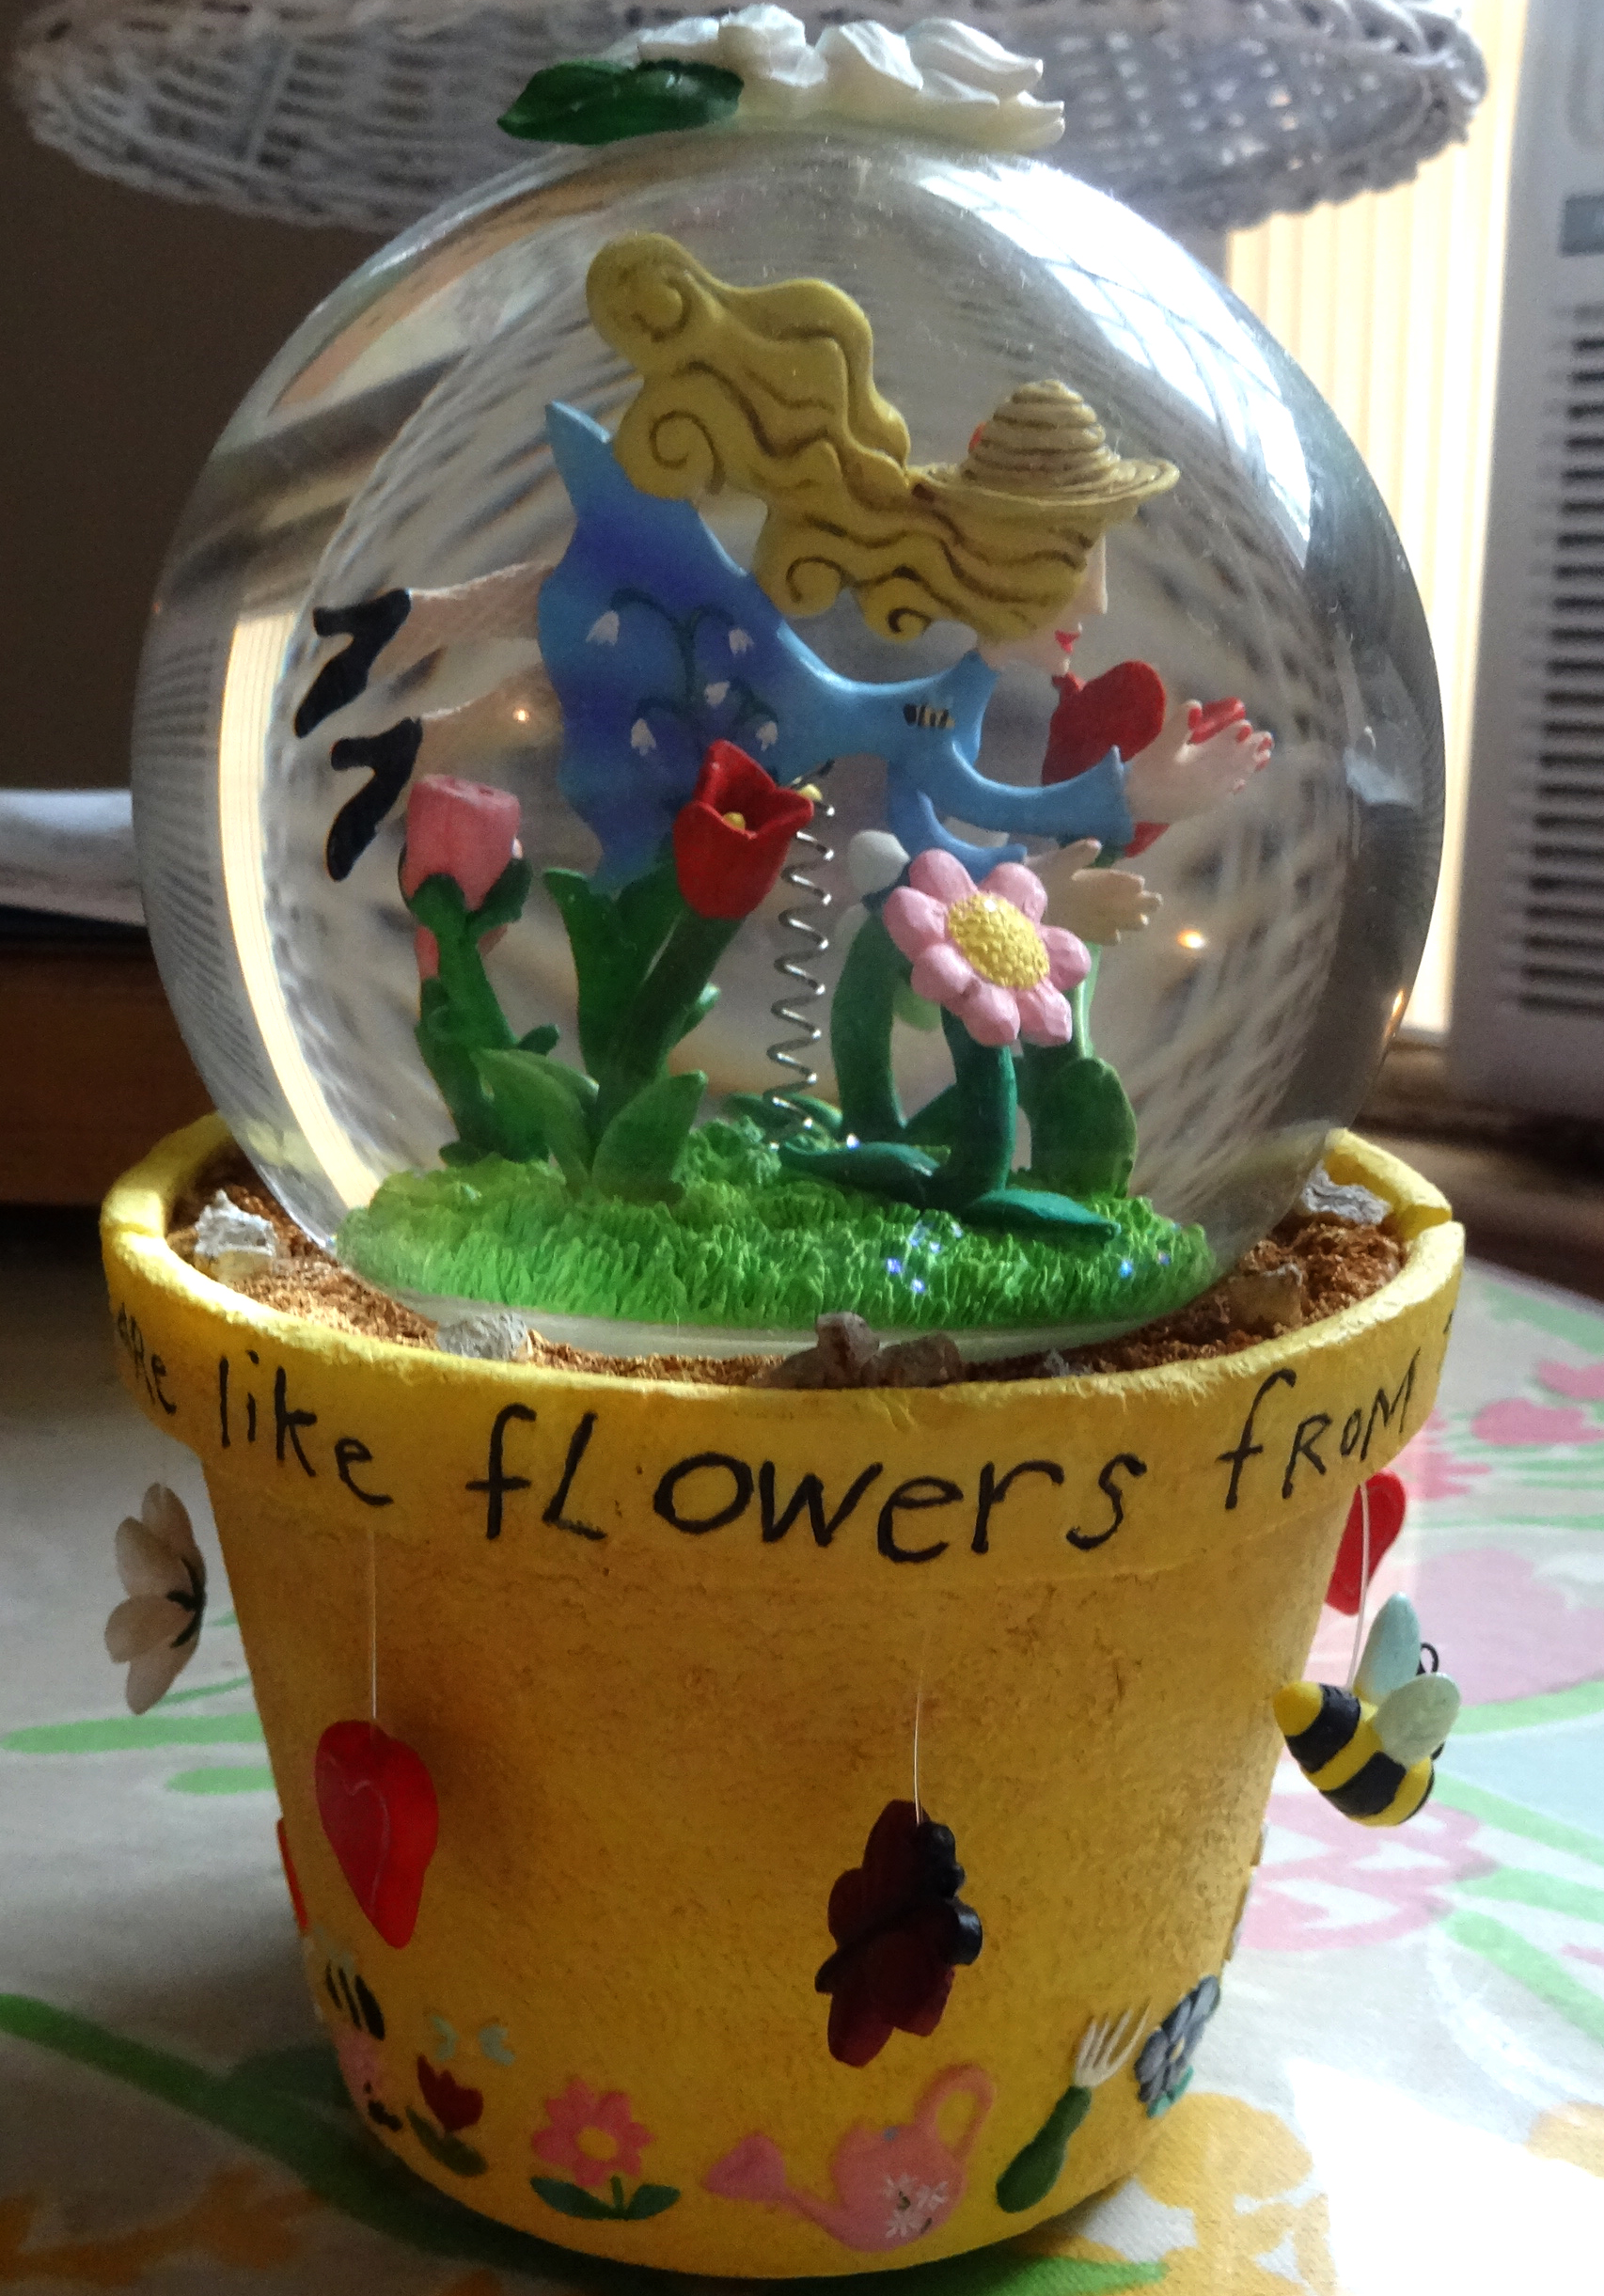 From the snow globe collection